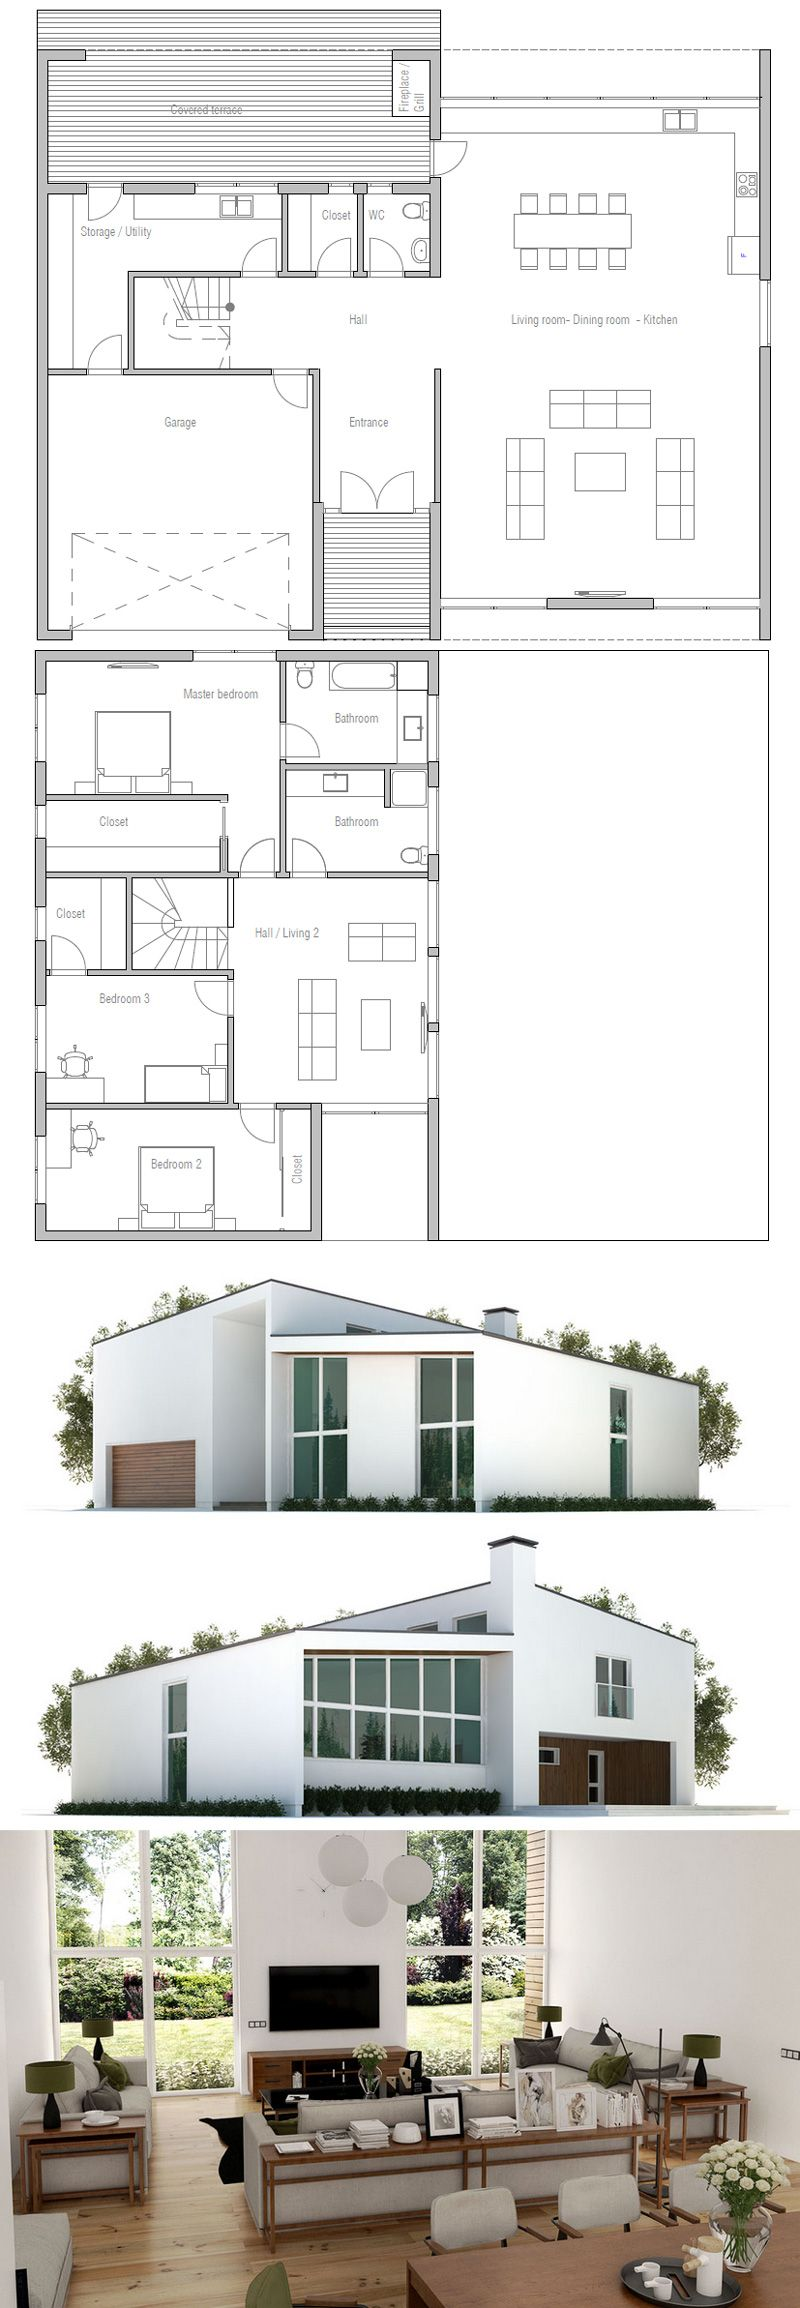 ^ 1000+ images about Dreamhouse on Pinterest Haus, wilight and House